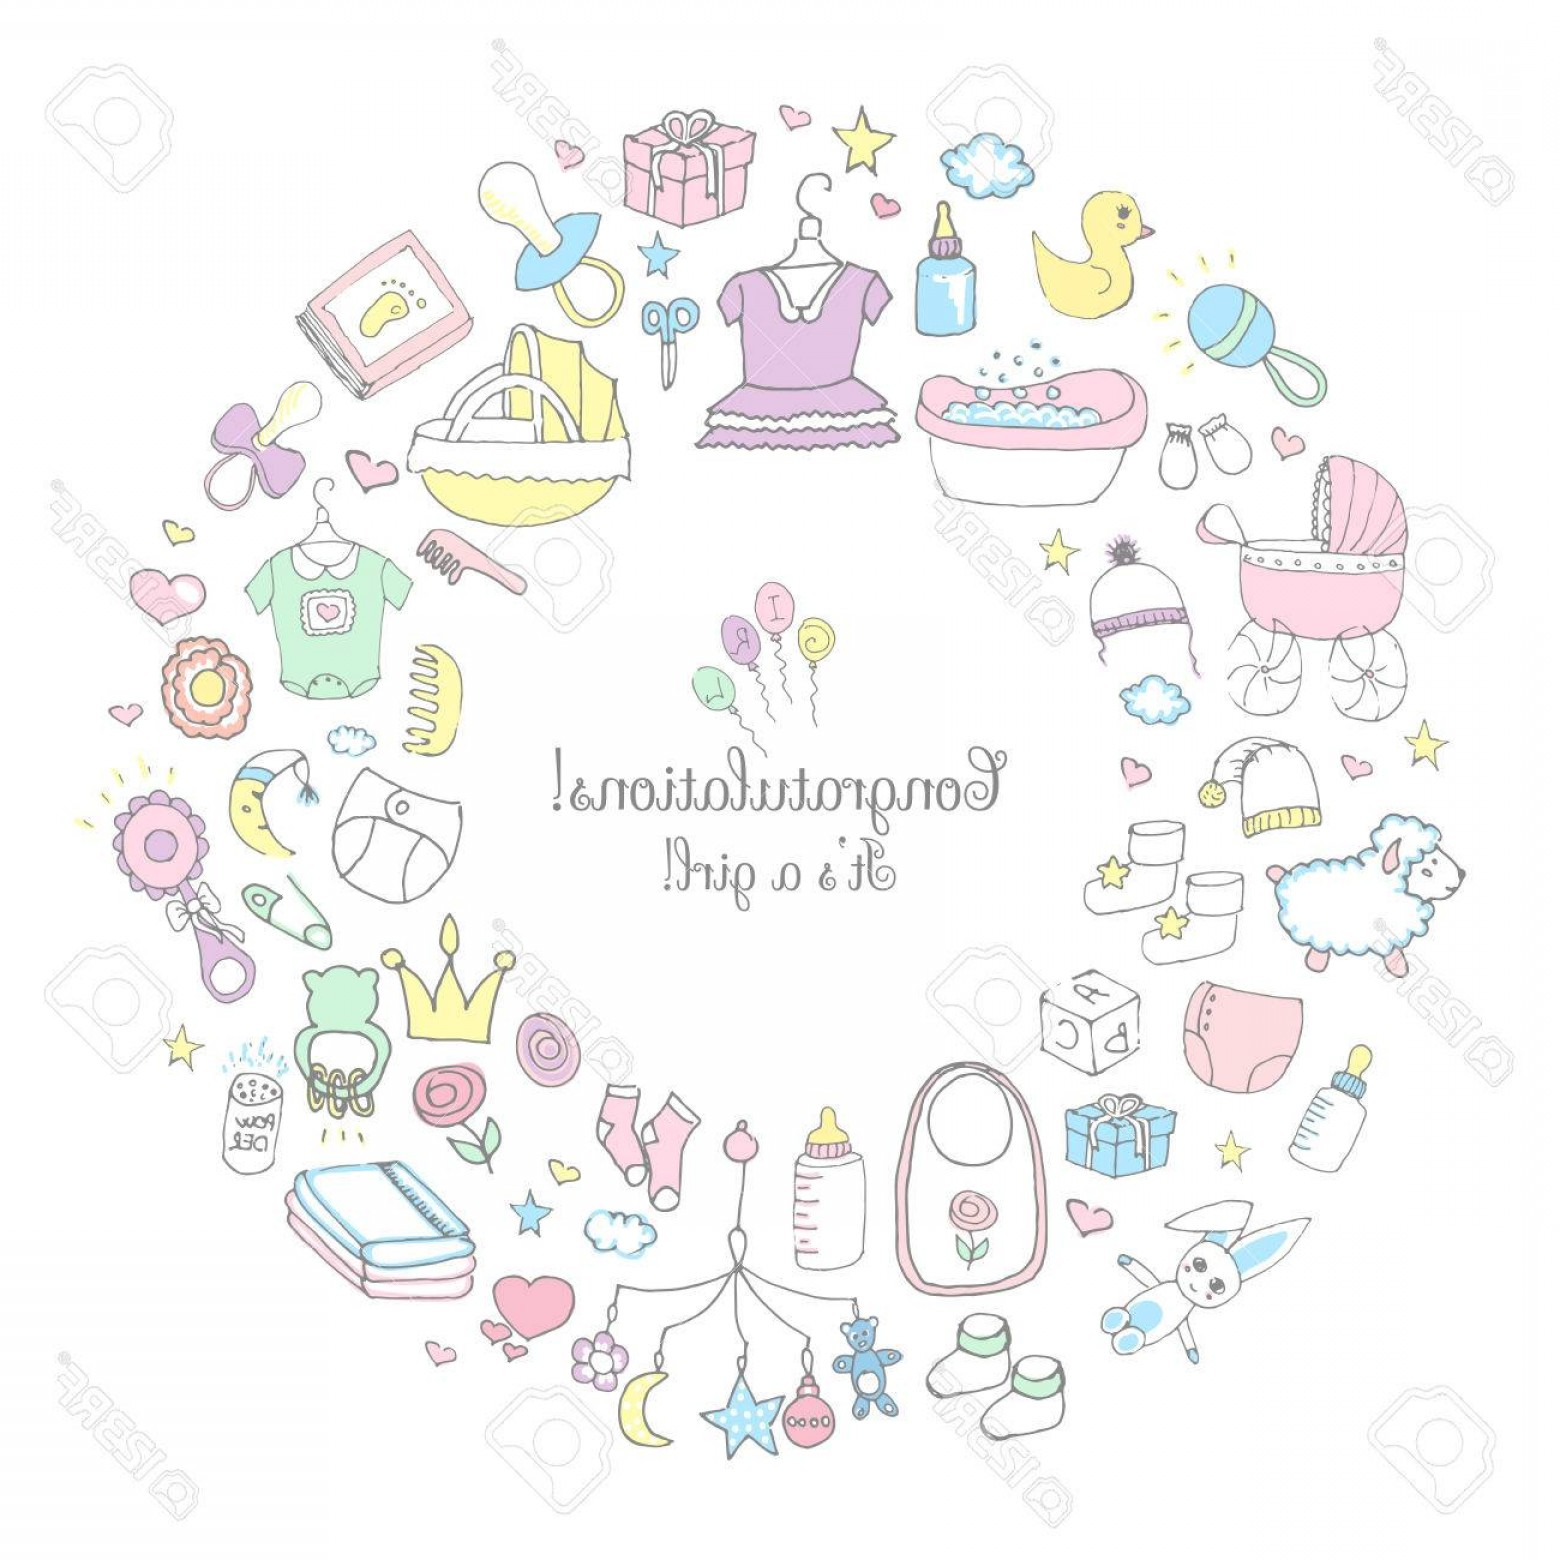 Cute Design Elements Vector Set: Photostock Vector Set Of Hand Drawn Cute Baby Shower Icons Kids Care Elements Vector Illustration It S A Baby Girl Des